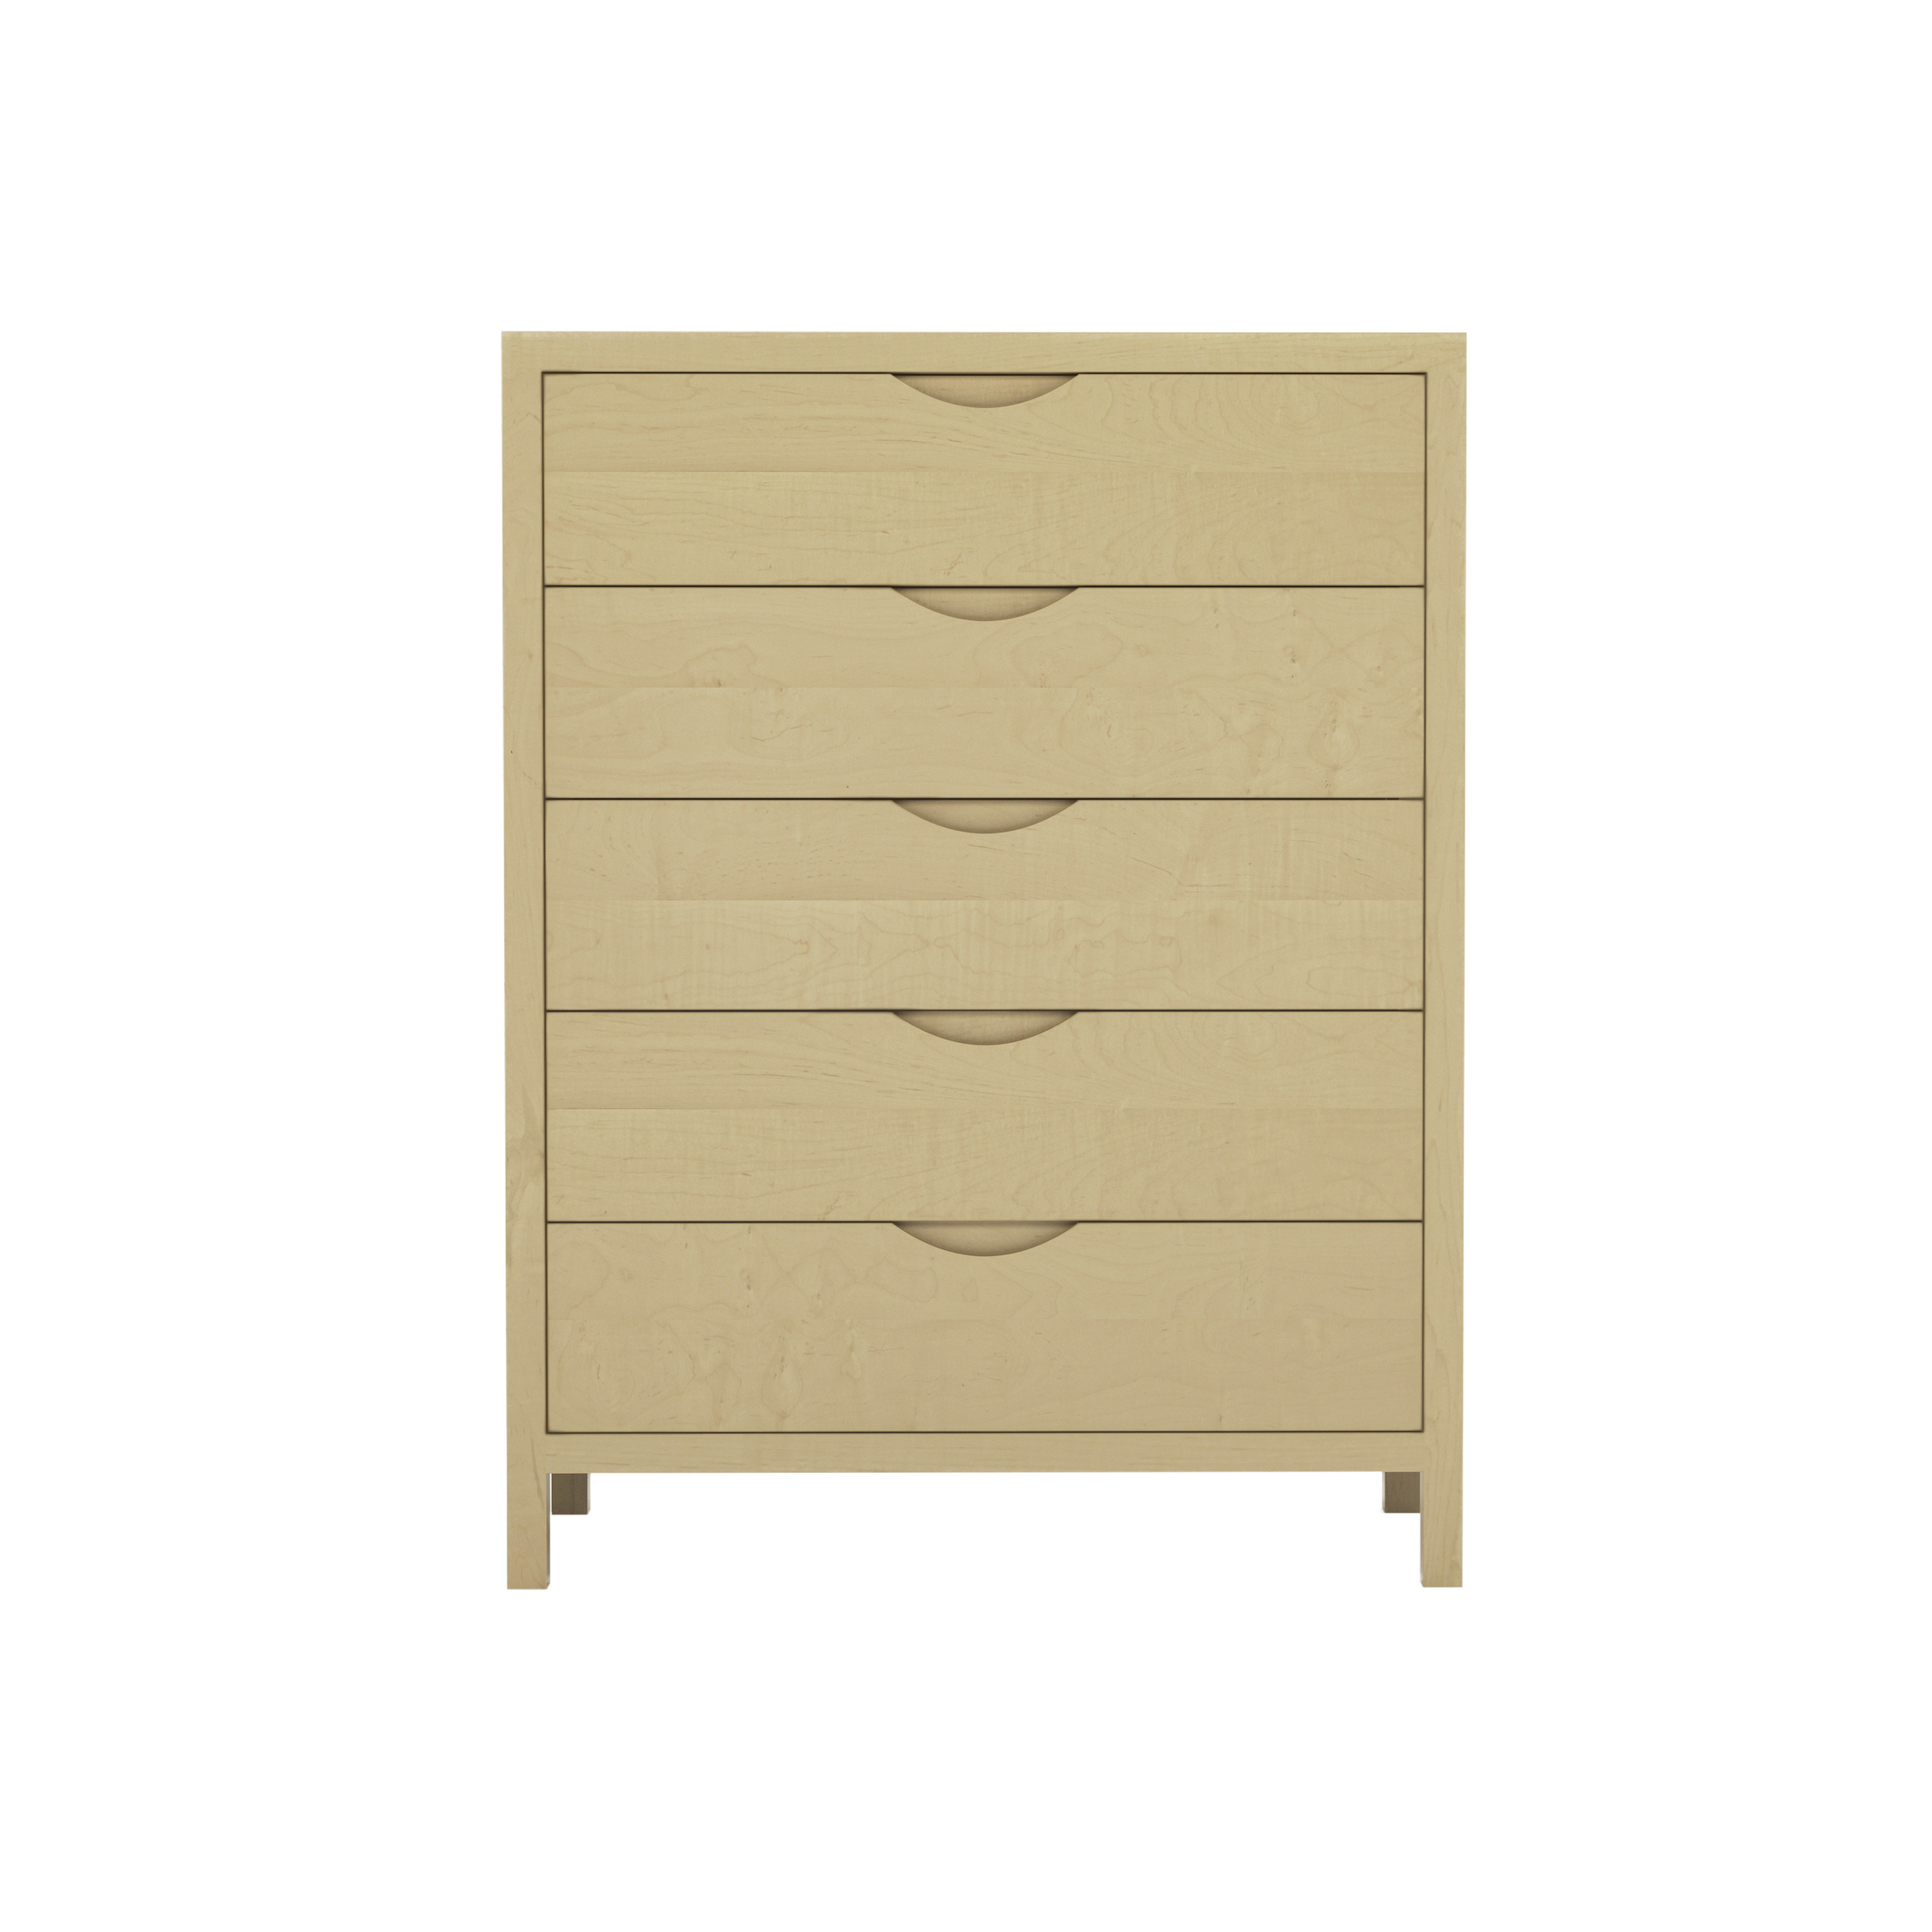 Series 353 Tall Dresser With Five Drawers At 36″ In Width